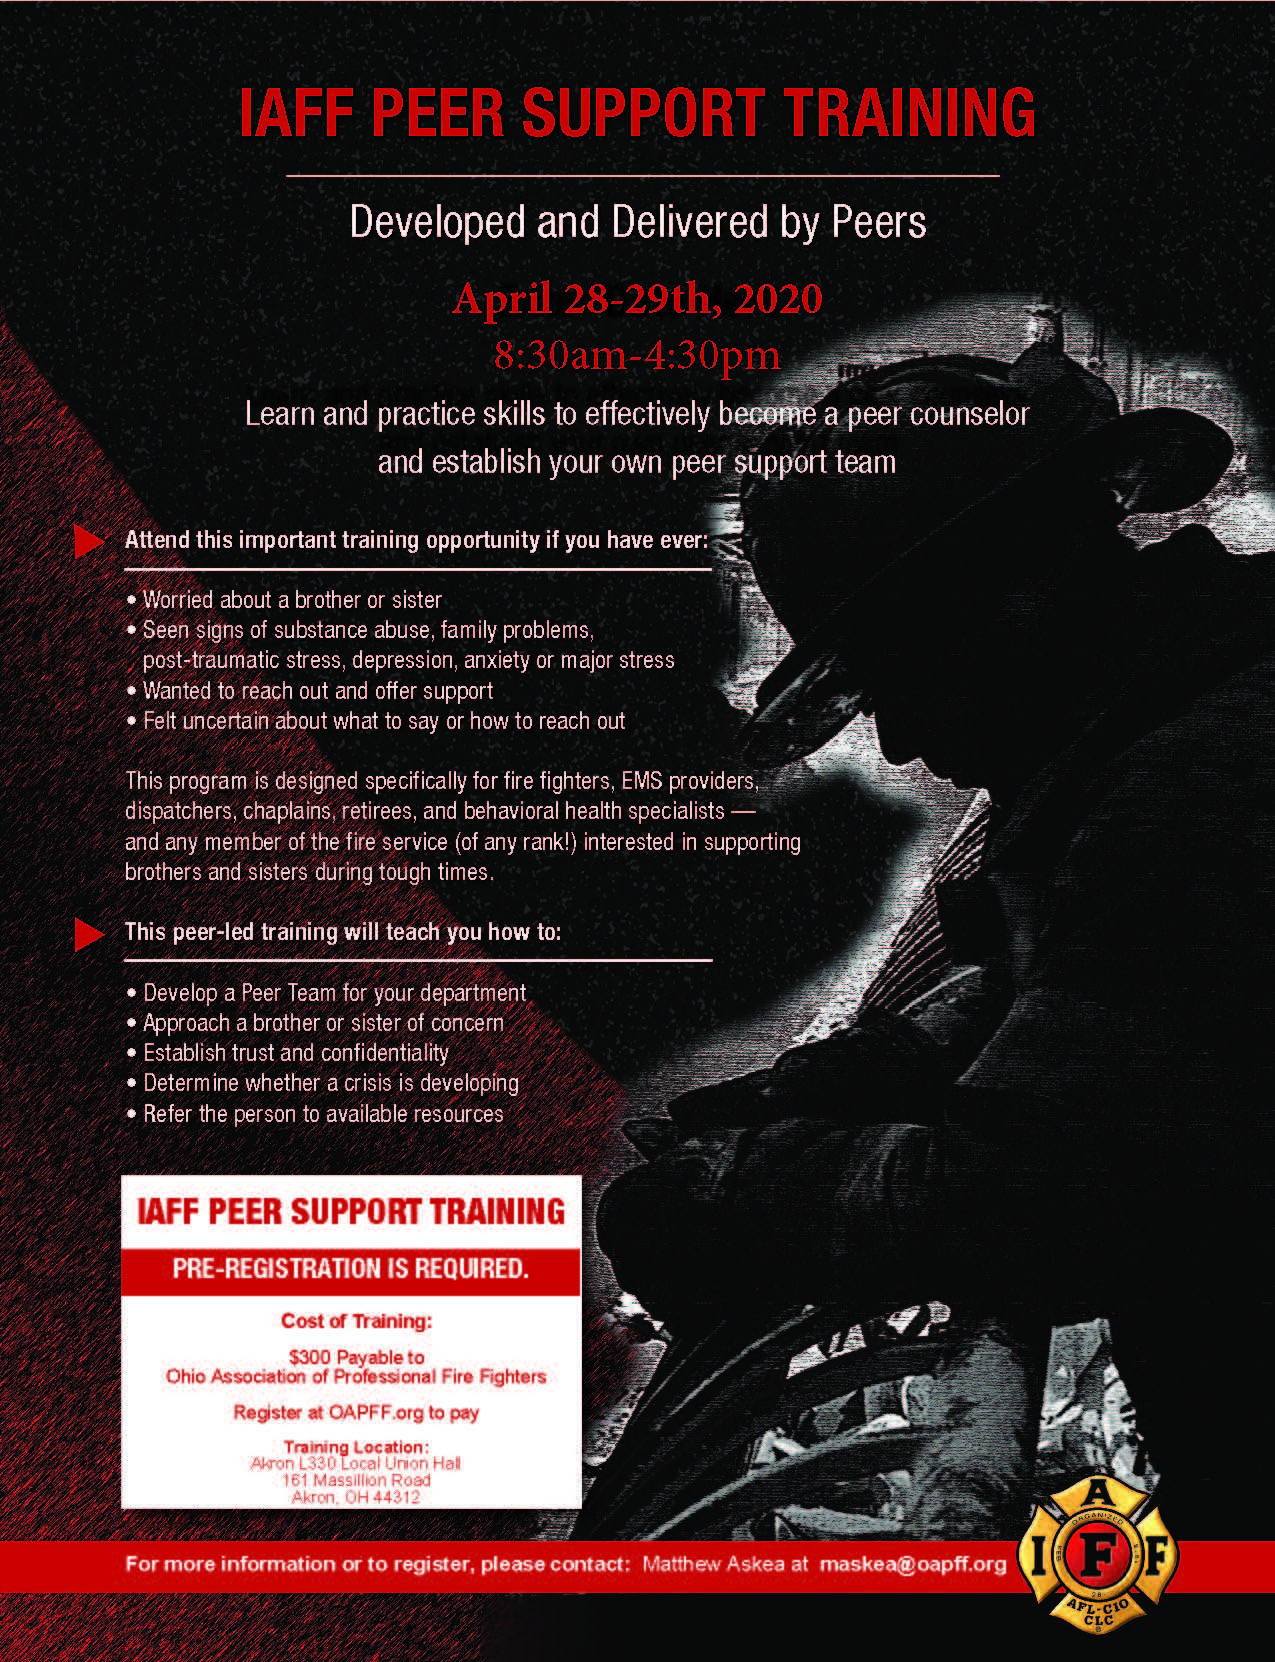 IAFF PEER SUpport Training flyer